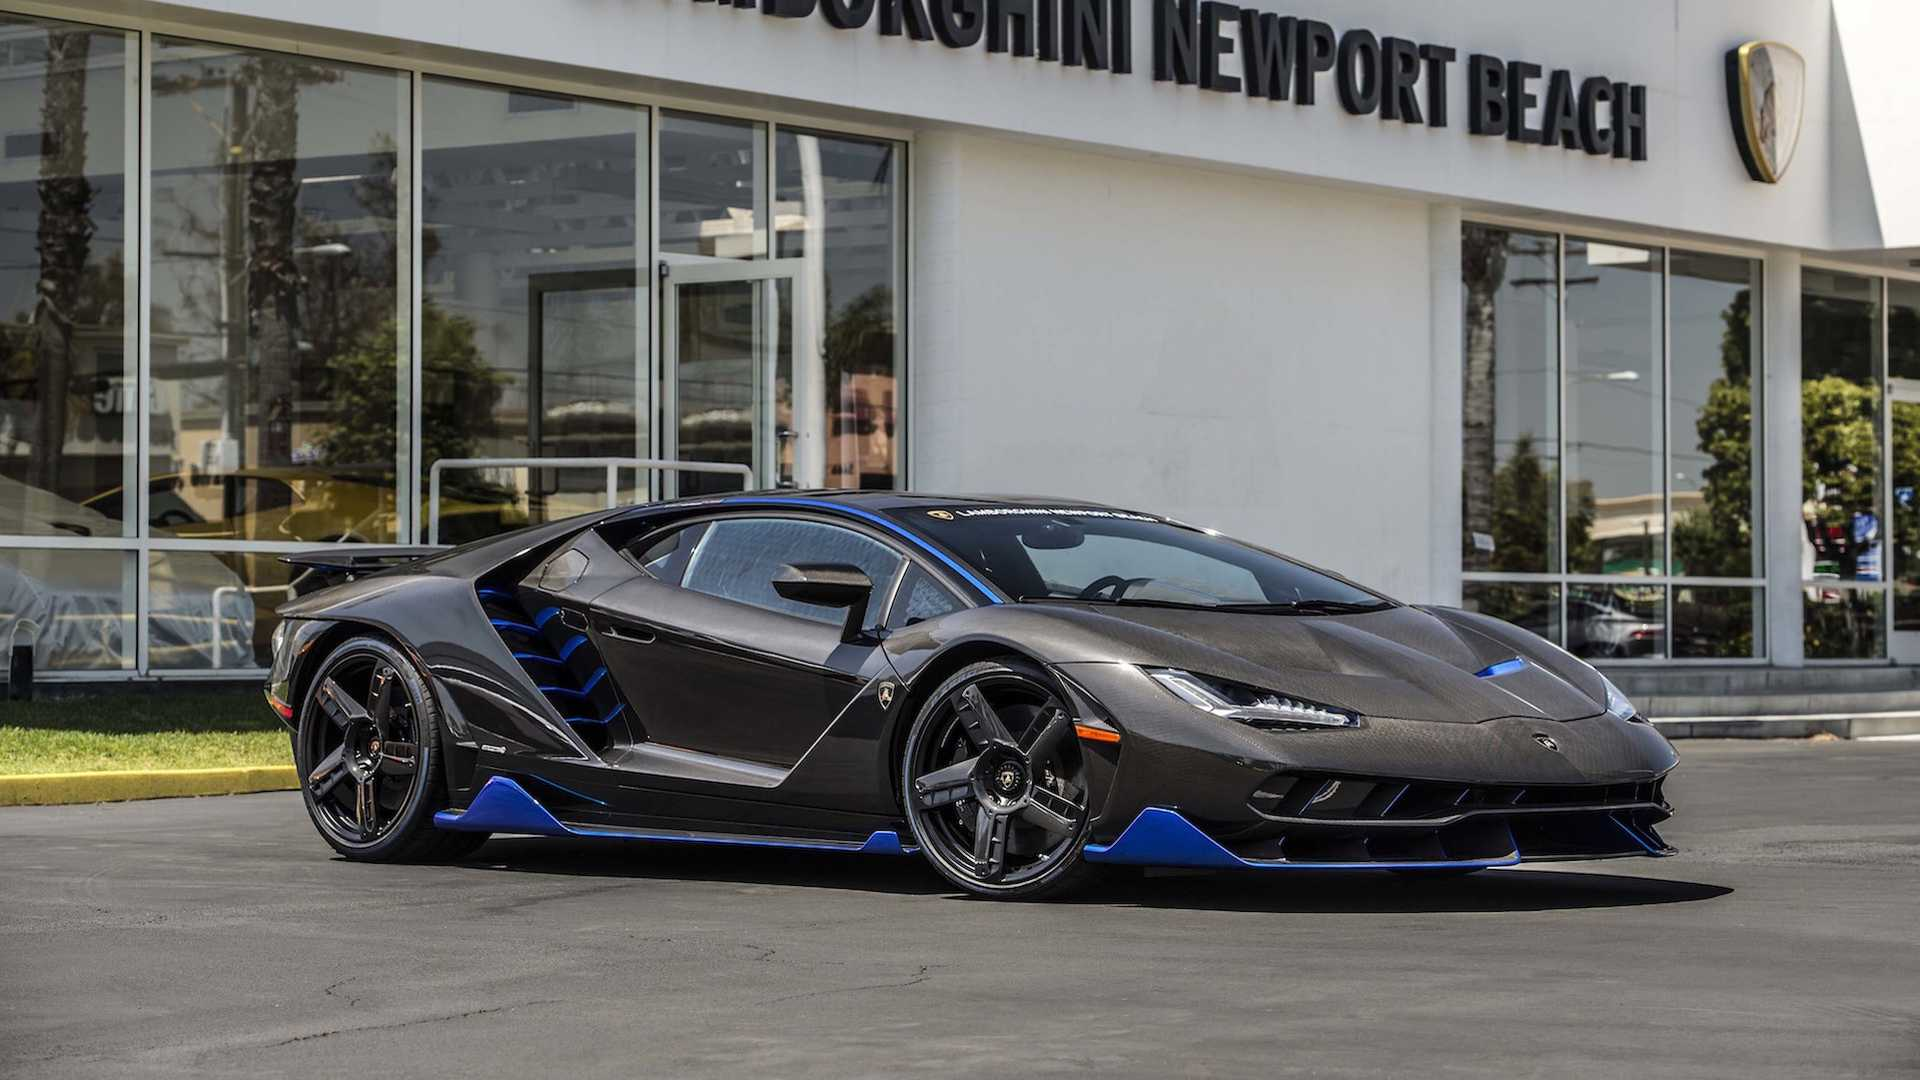 First Lamborghini Centenario In The US Shows Up In Cali - Lamborghini newport beach car show 2018